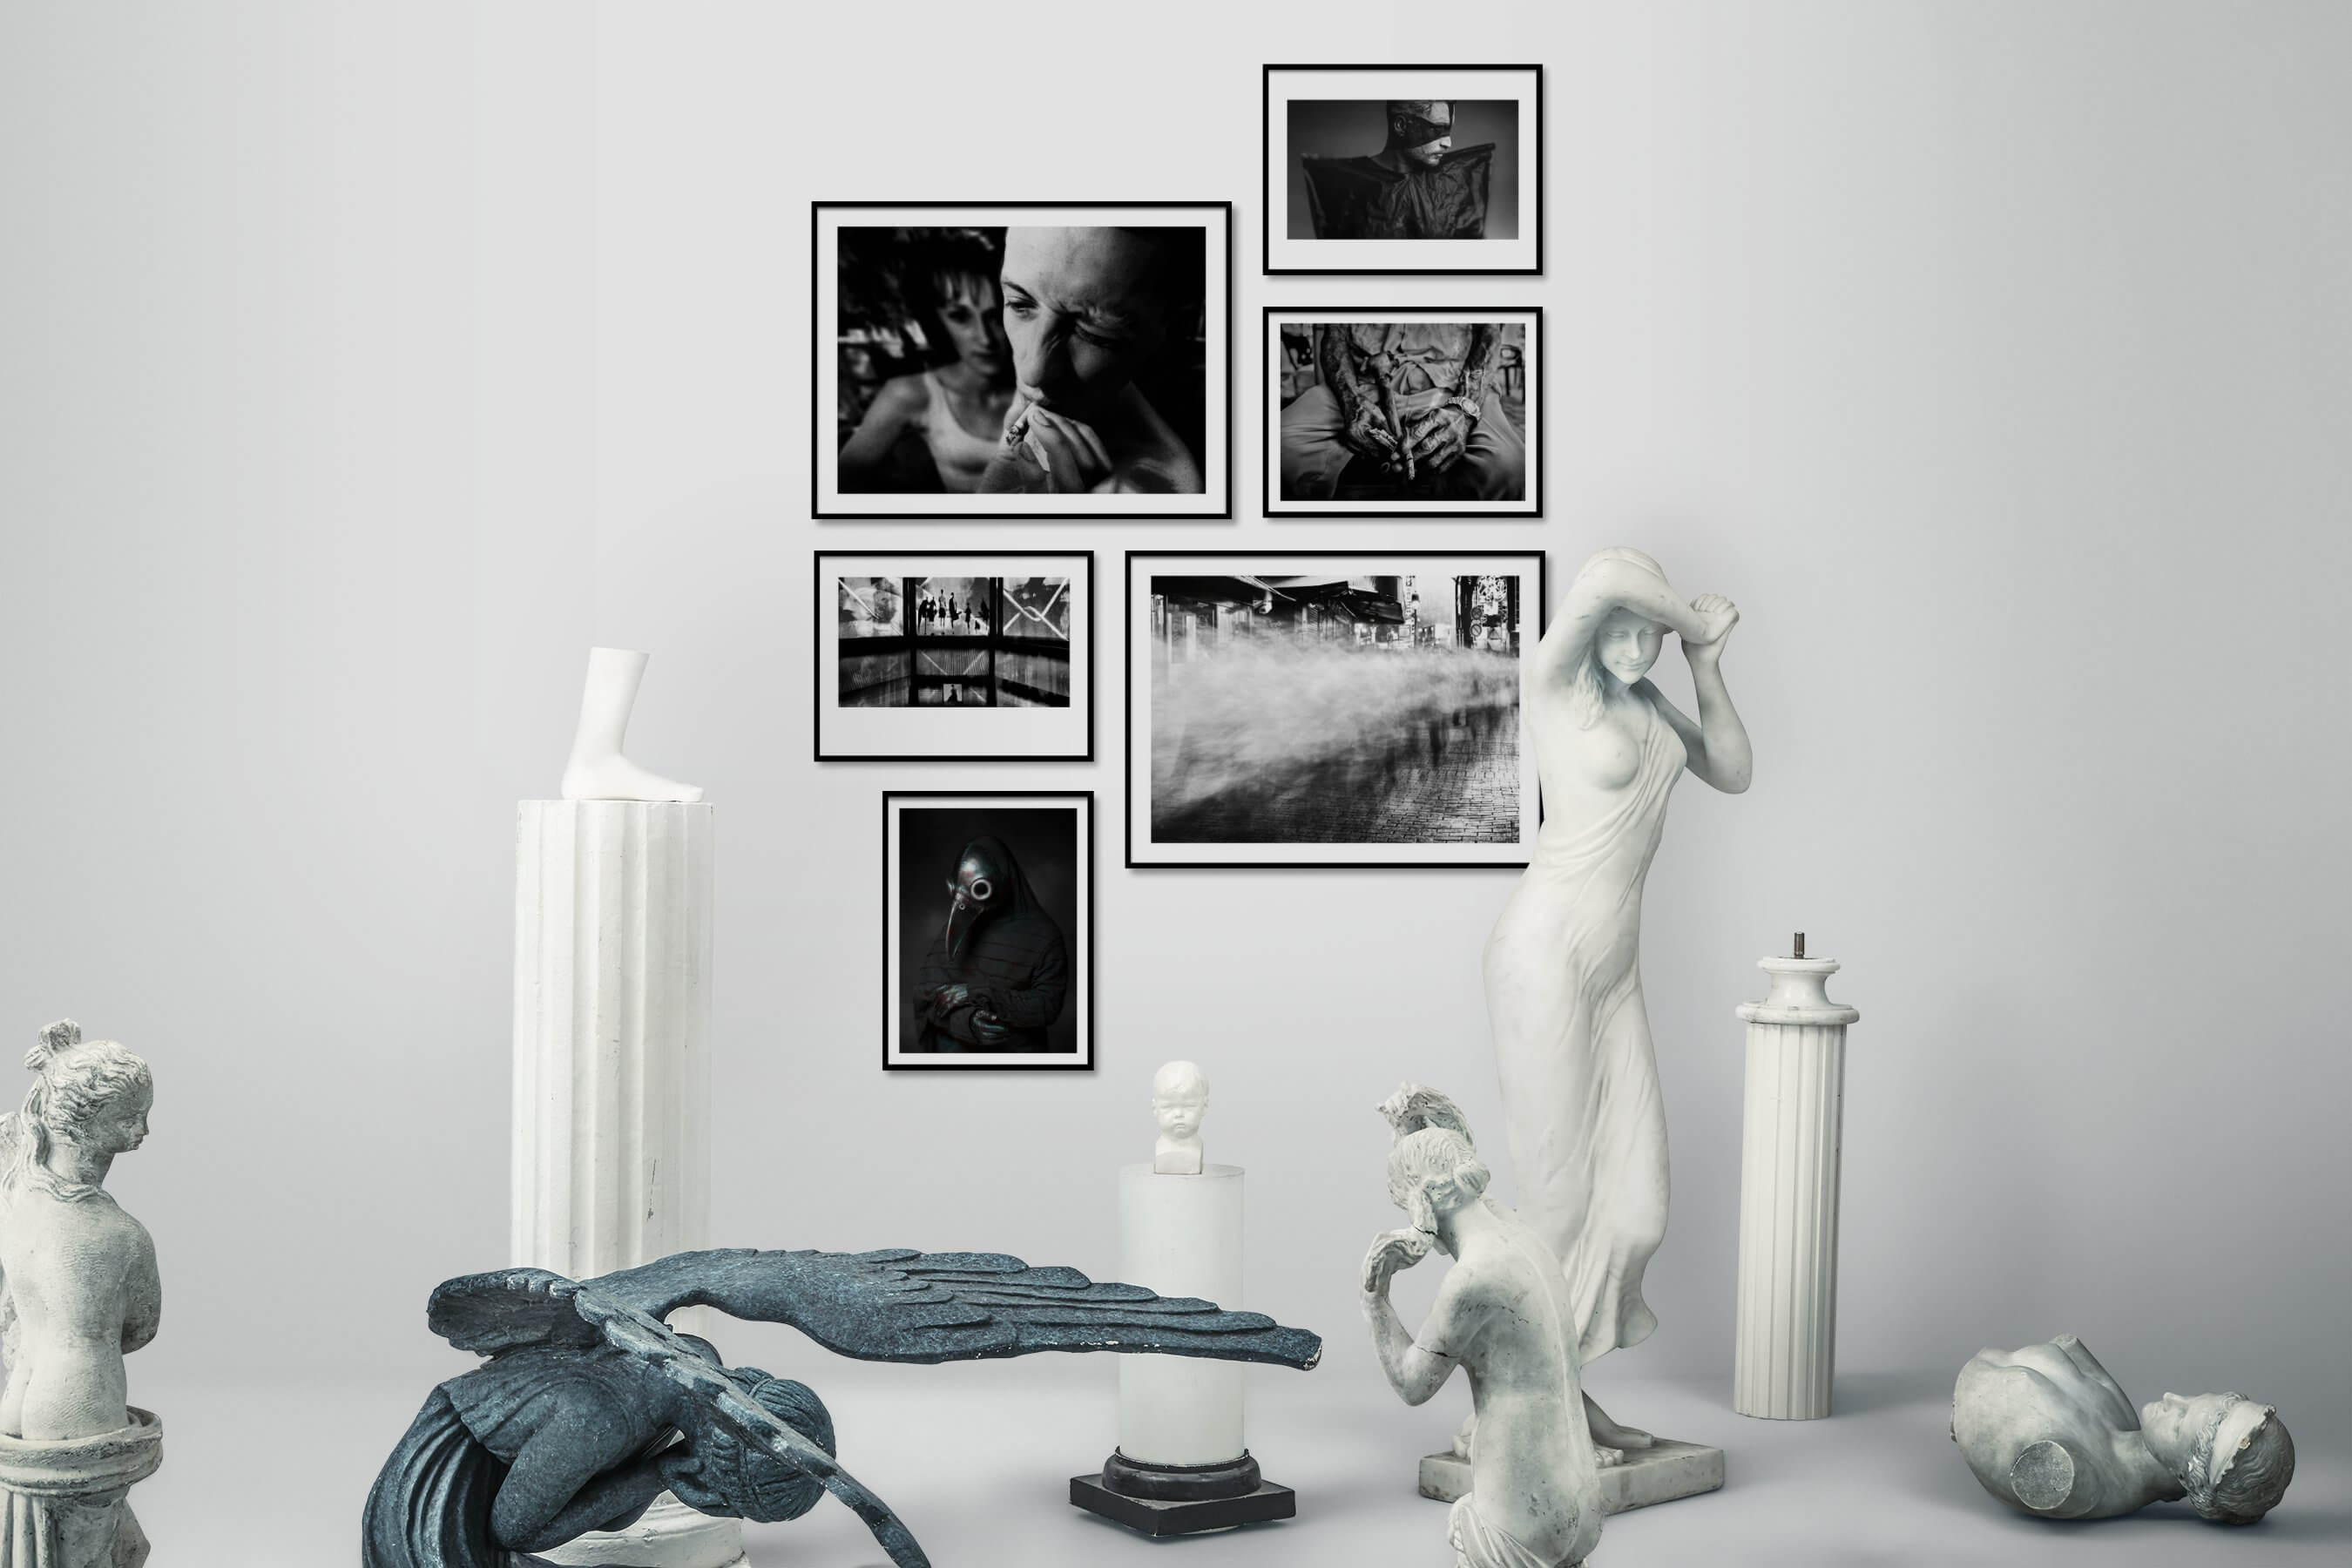 Gallery wall idea with six framed pictures arranged on a wall depicting Artsy, Black & White, For the Moderate, and City Life